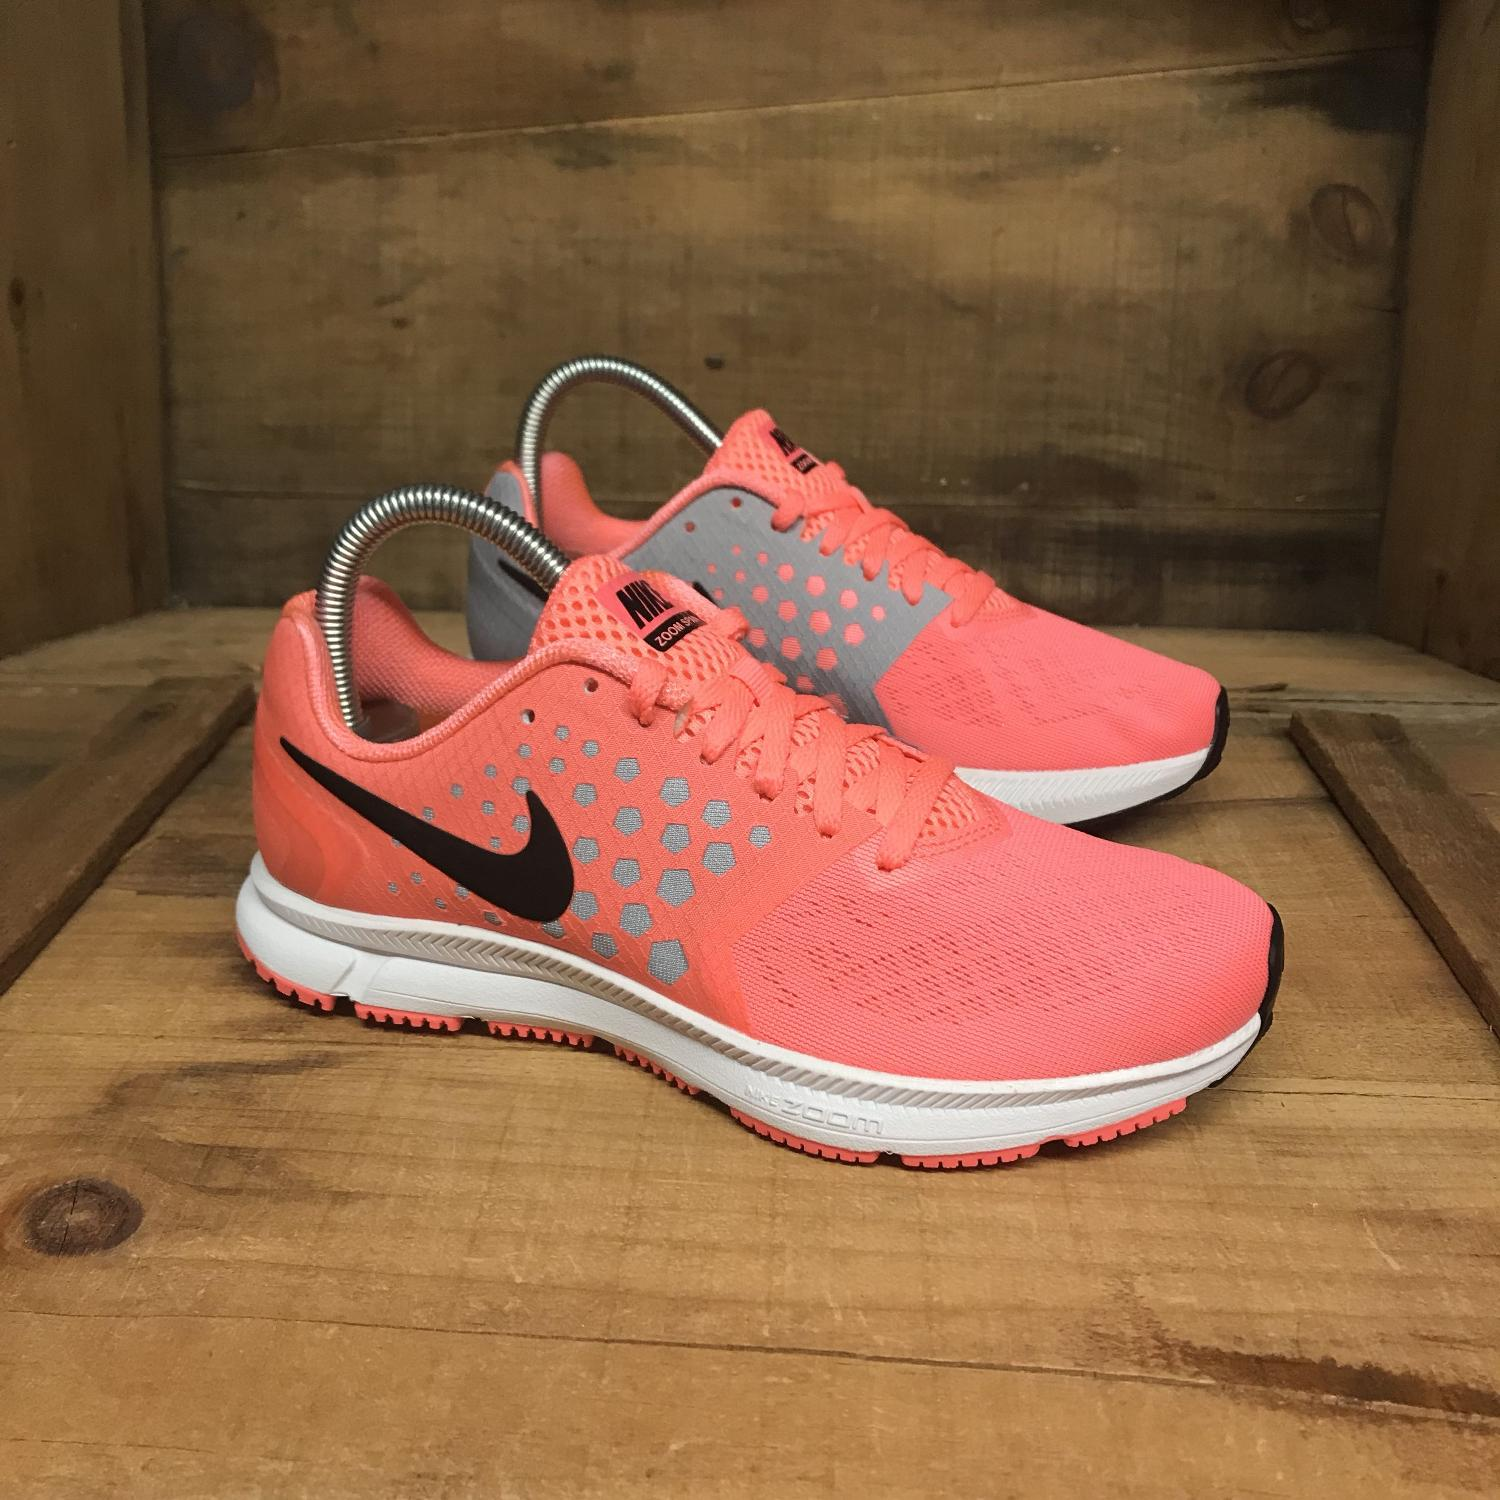 Best Nike Zoom Span New For Sale In Portland Maine 2018 Women Shoes Pink